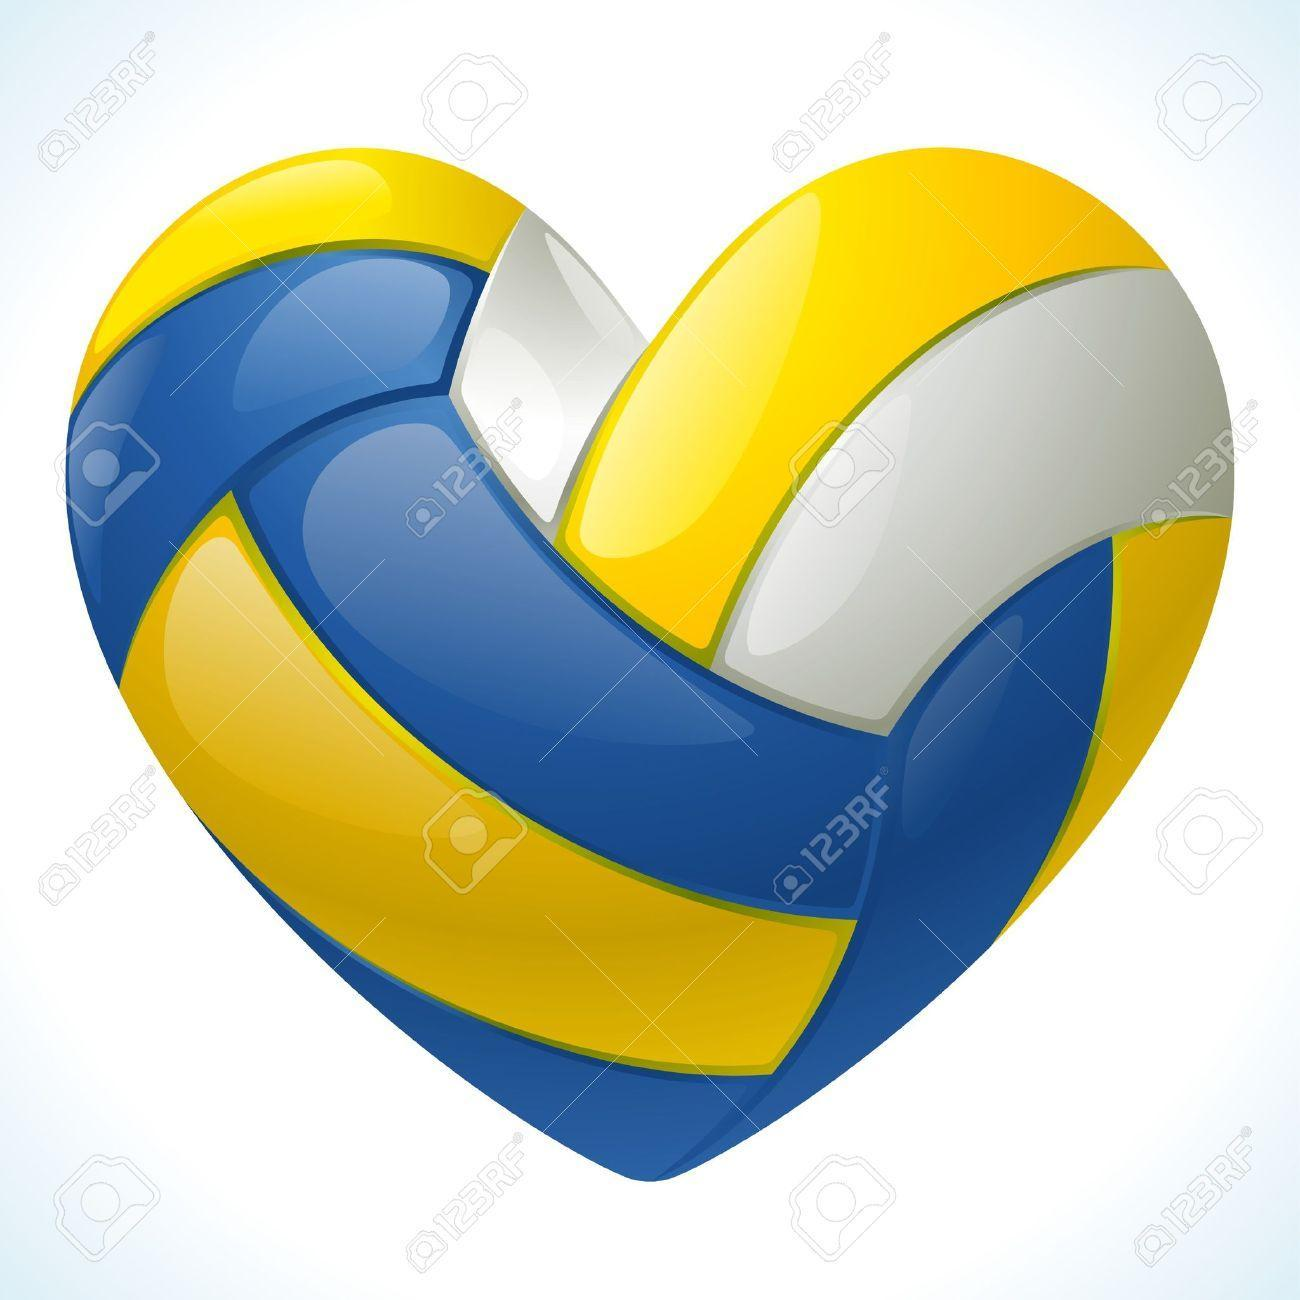 What color is the orgaginal volleyball?